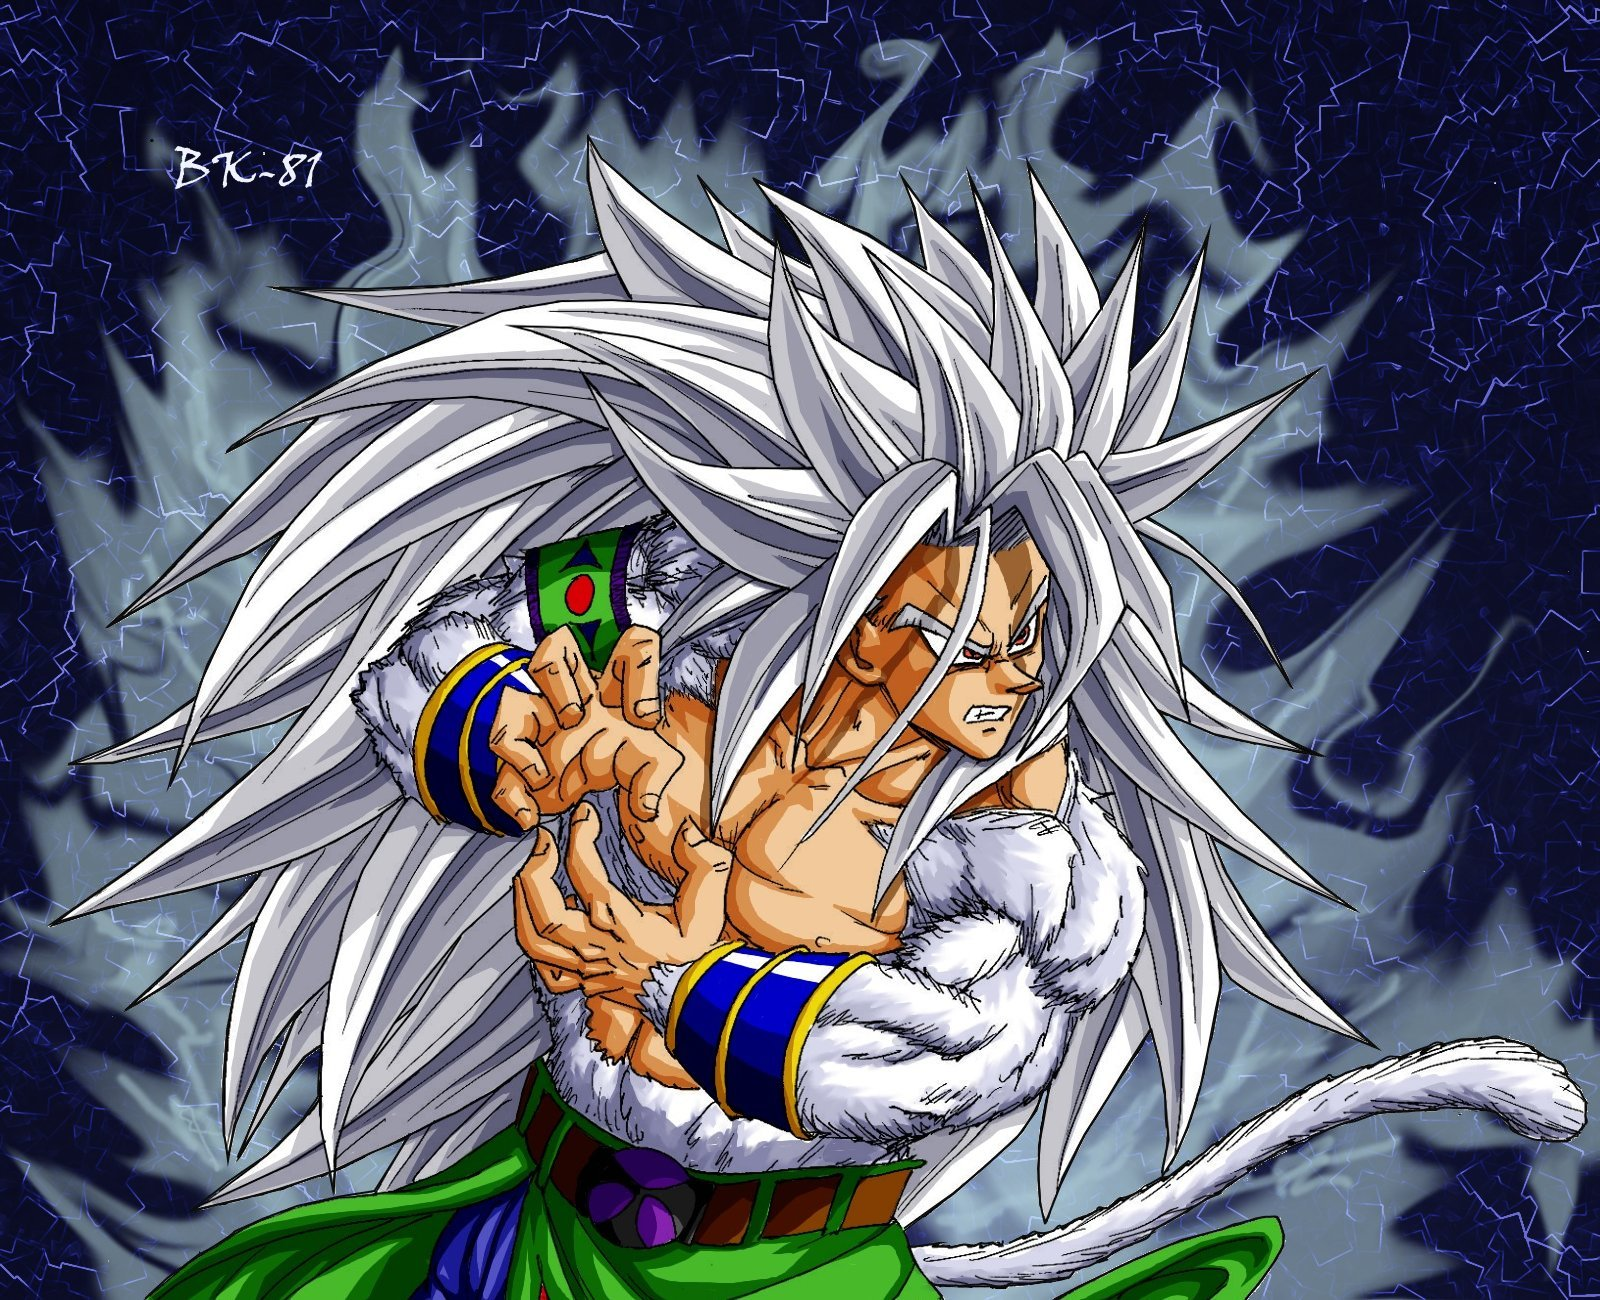 Goku saiyan 5 dragonball af background and wallpapers - Goku 5 super saiyan ...